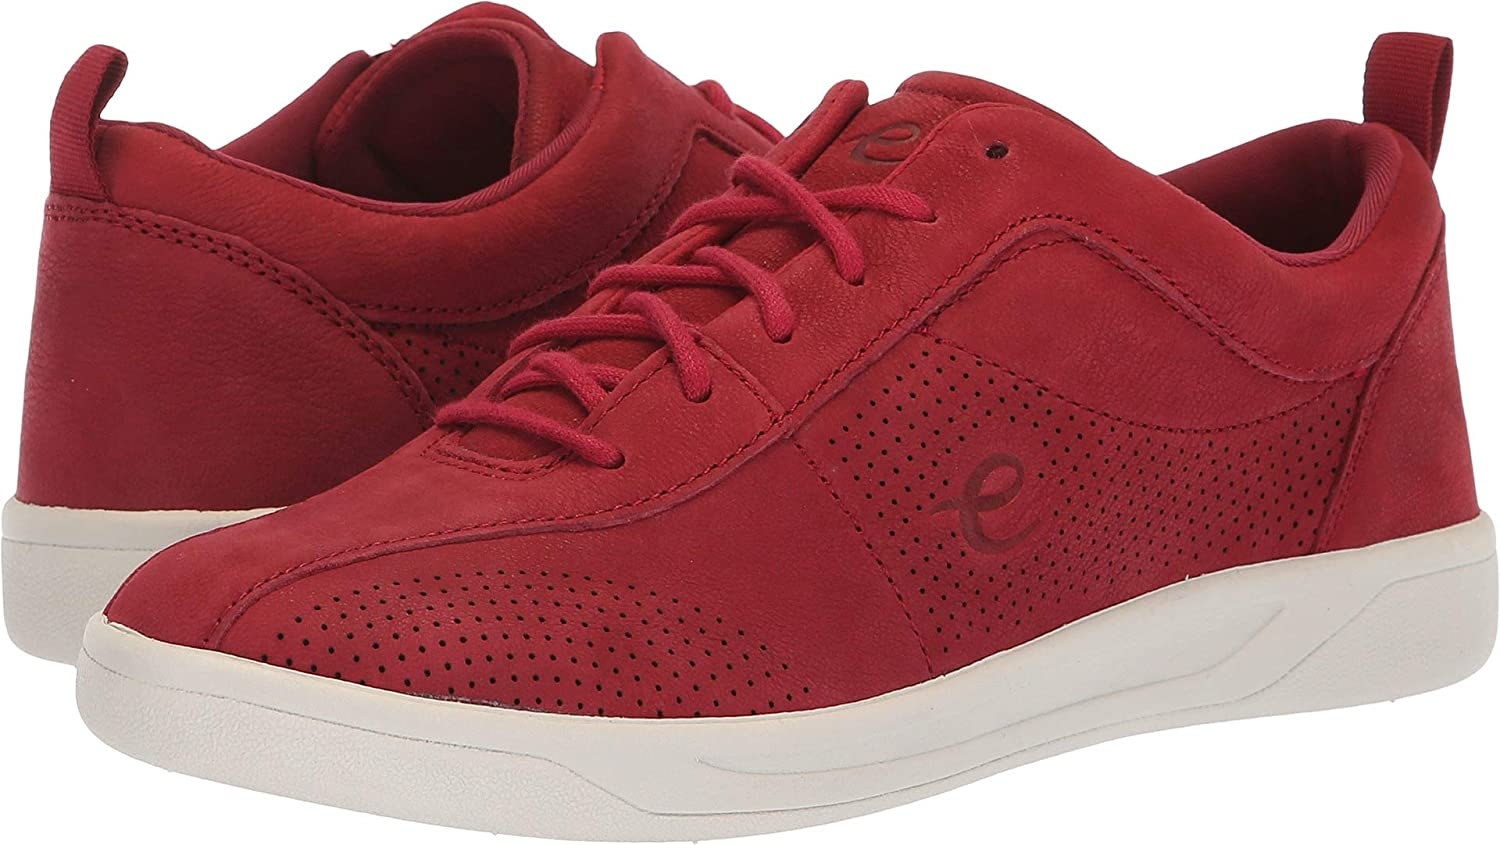 Luxe Red Luxe Red Easy Spirit Womens Freney8 Sneaker